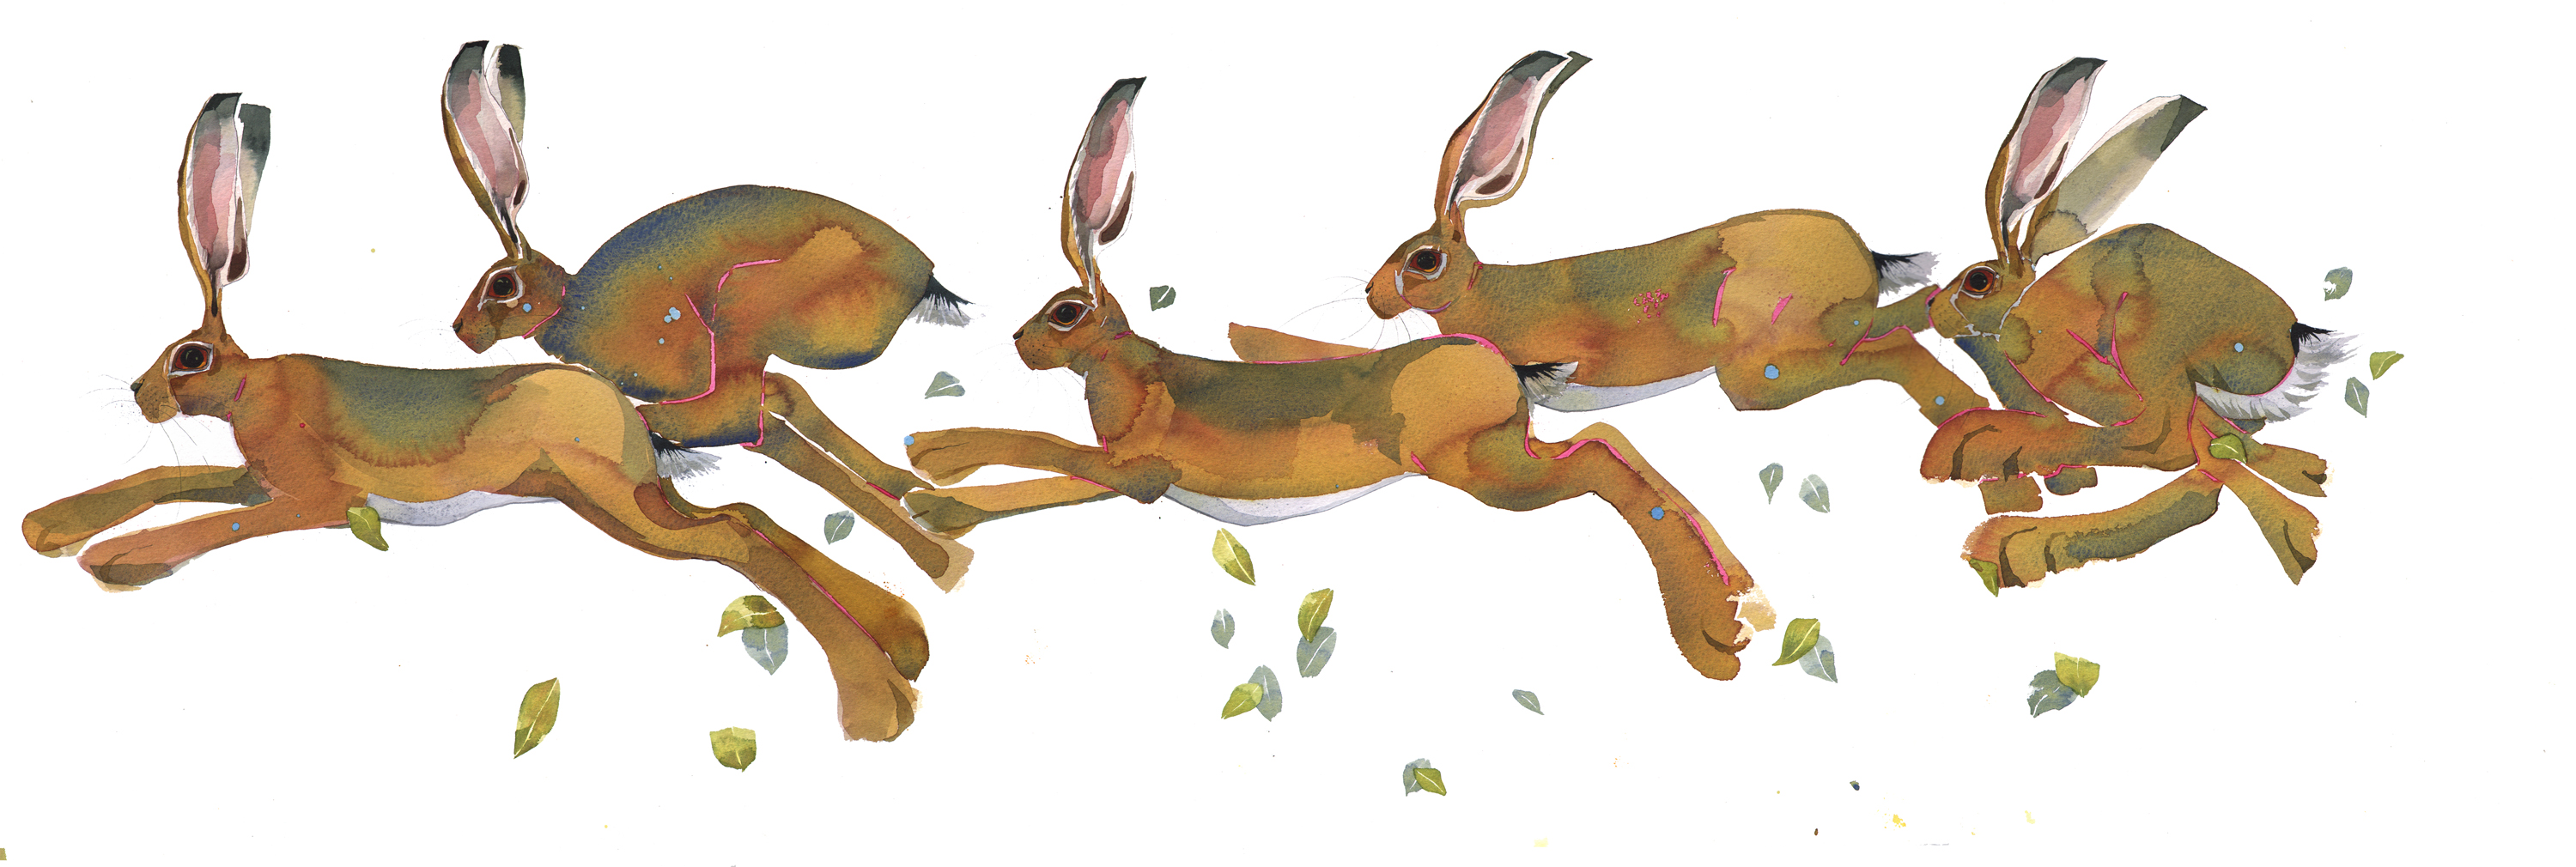 Mad March Hares SOLD image